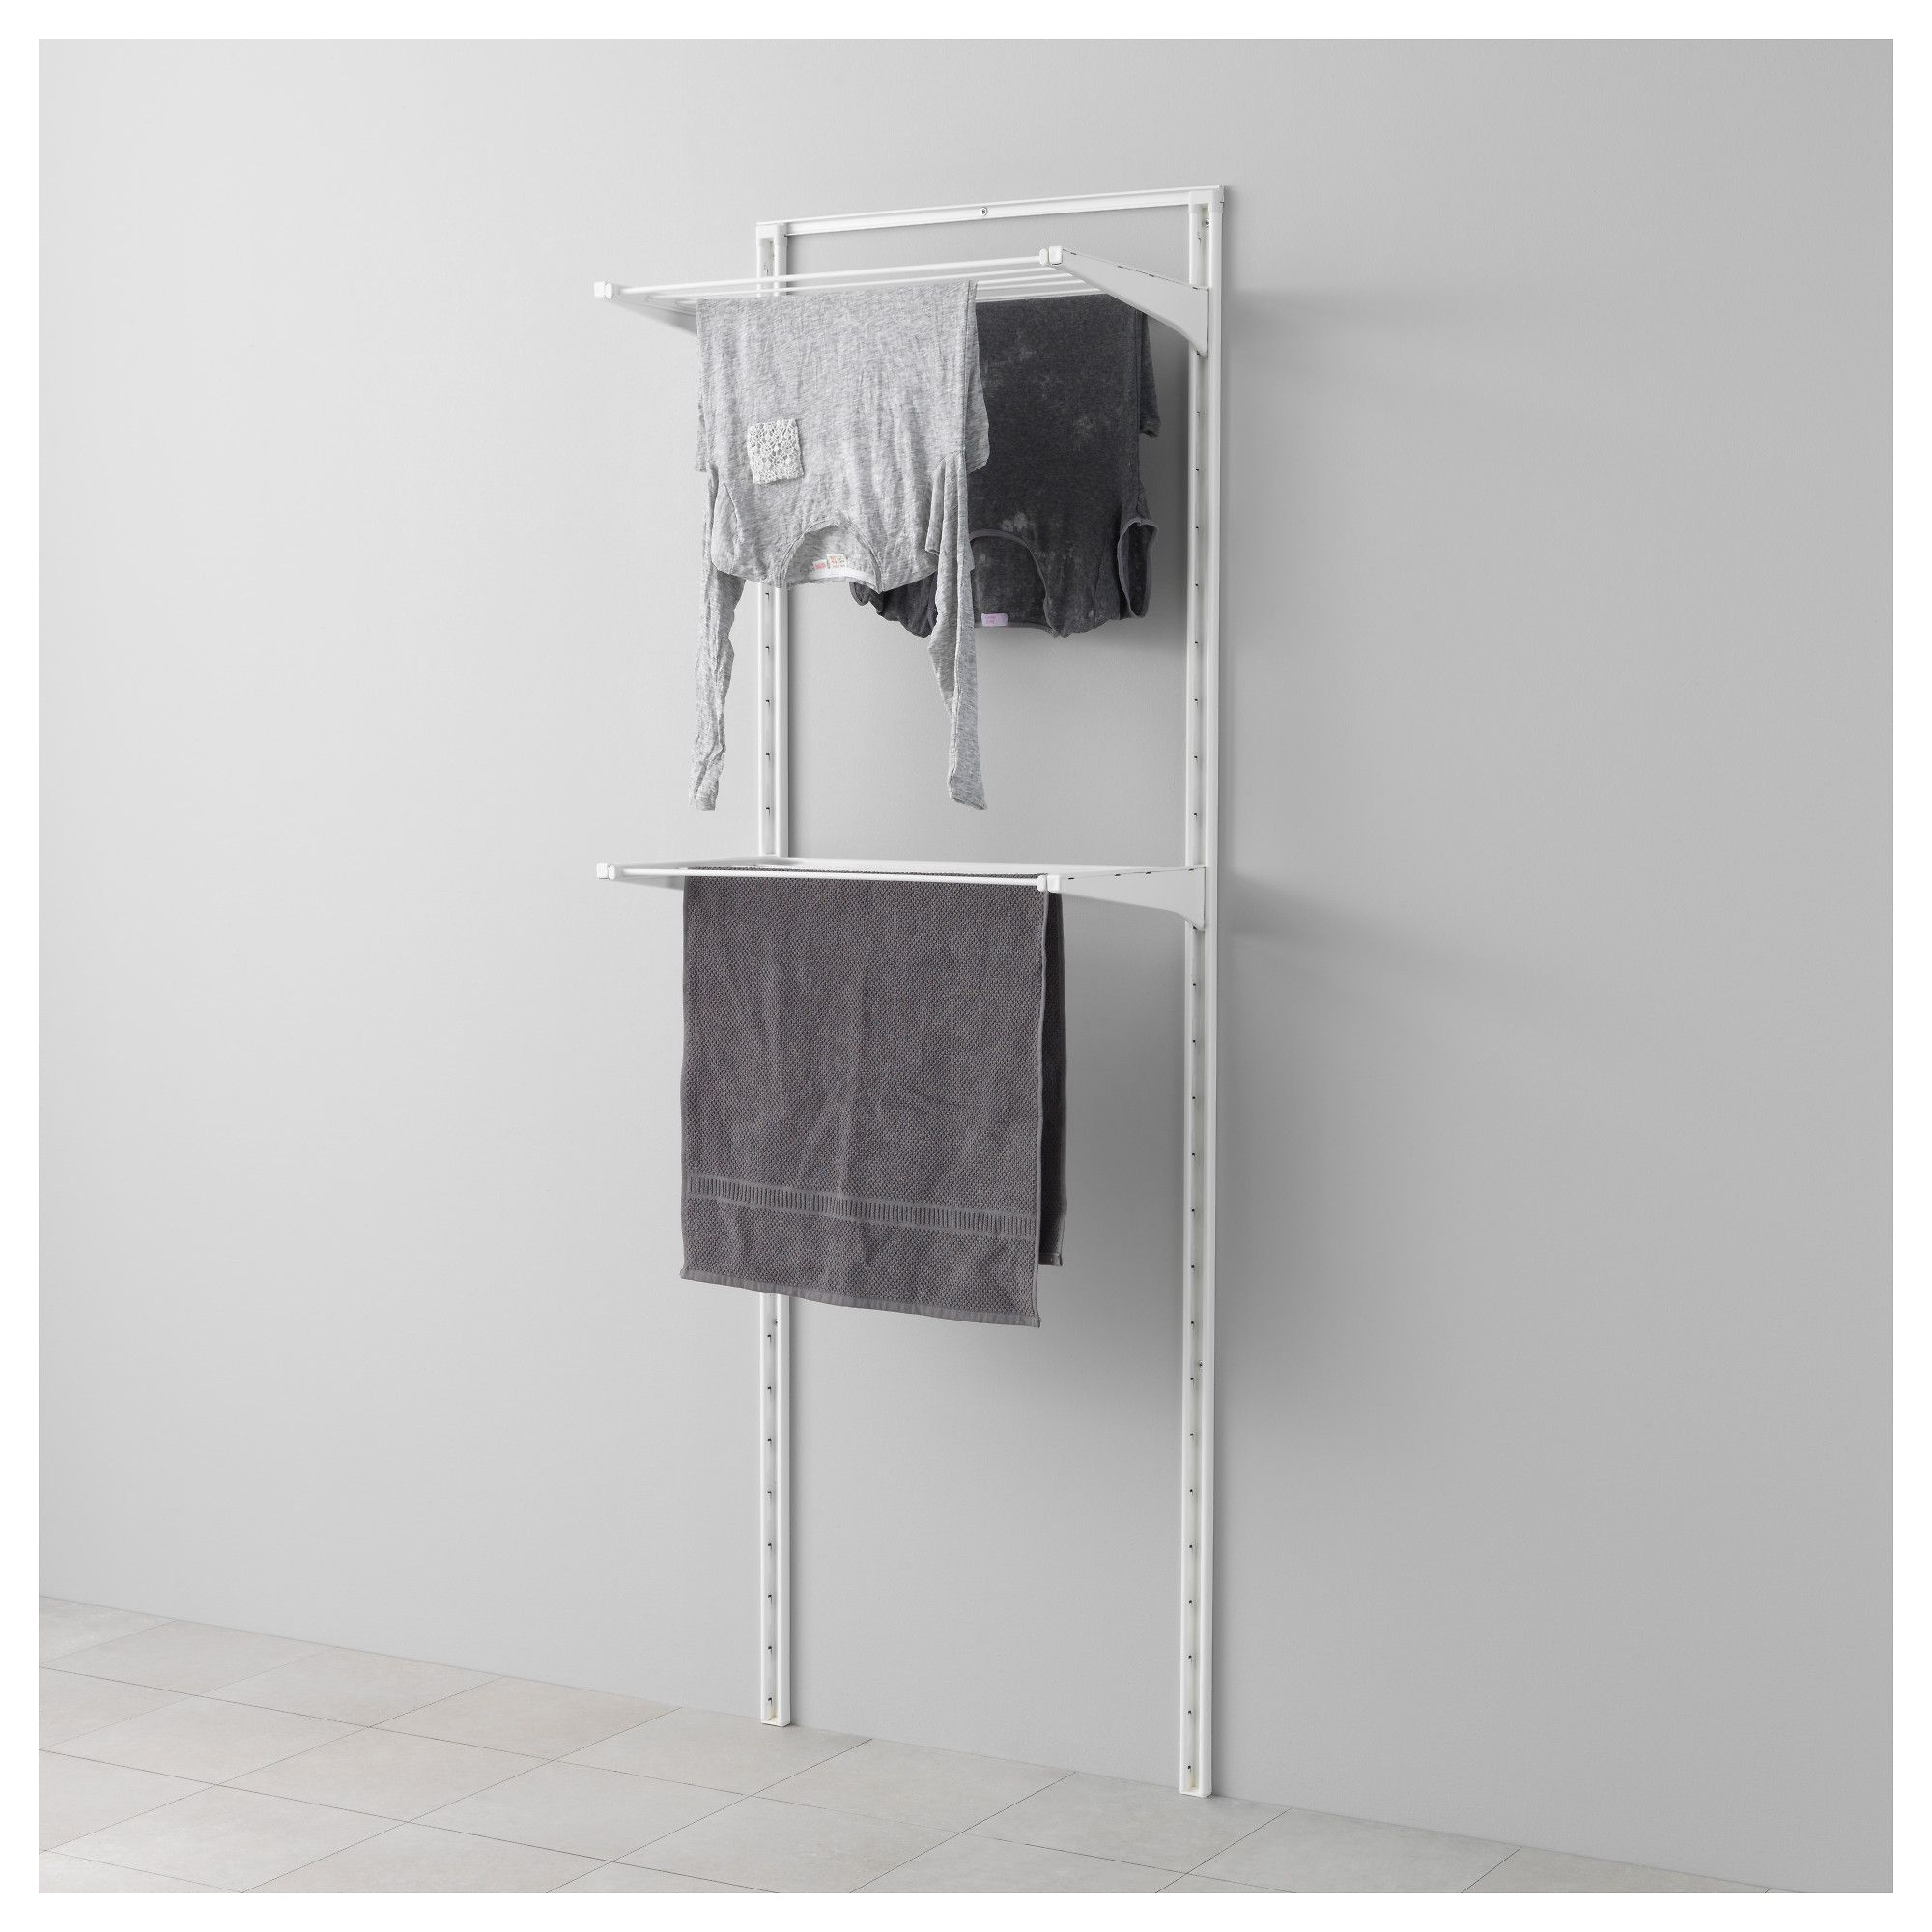 Algot Wall Upright Drying Rack White 26x16 1 8x77 1 2 With